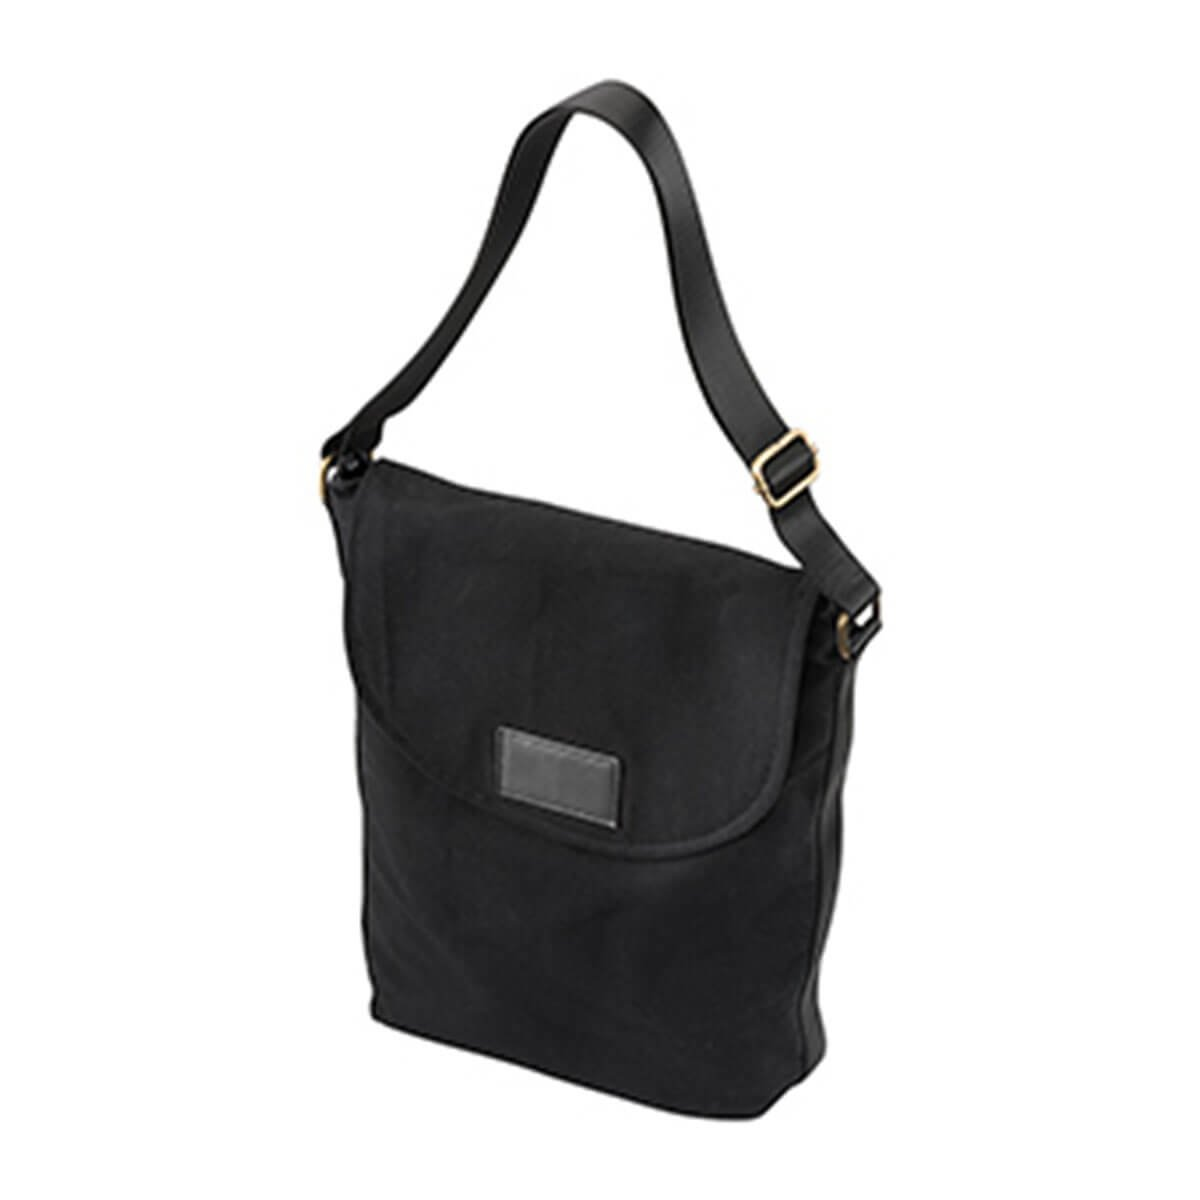 Trekk Oilskin Wine Bag-Black